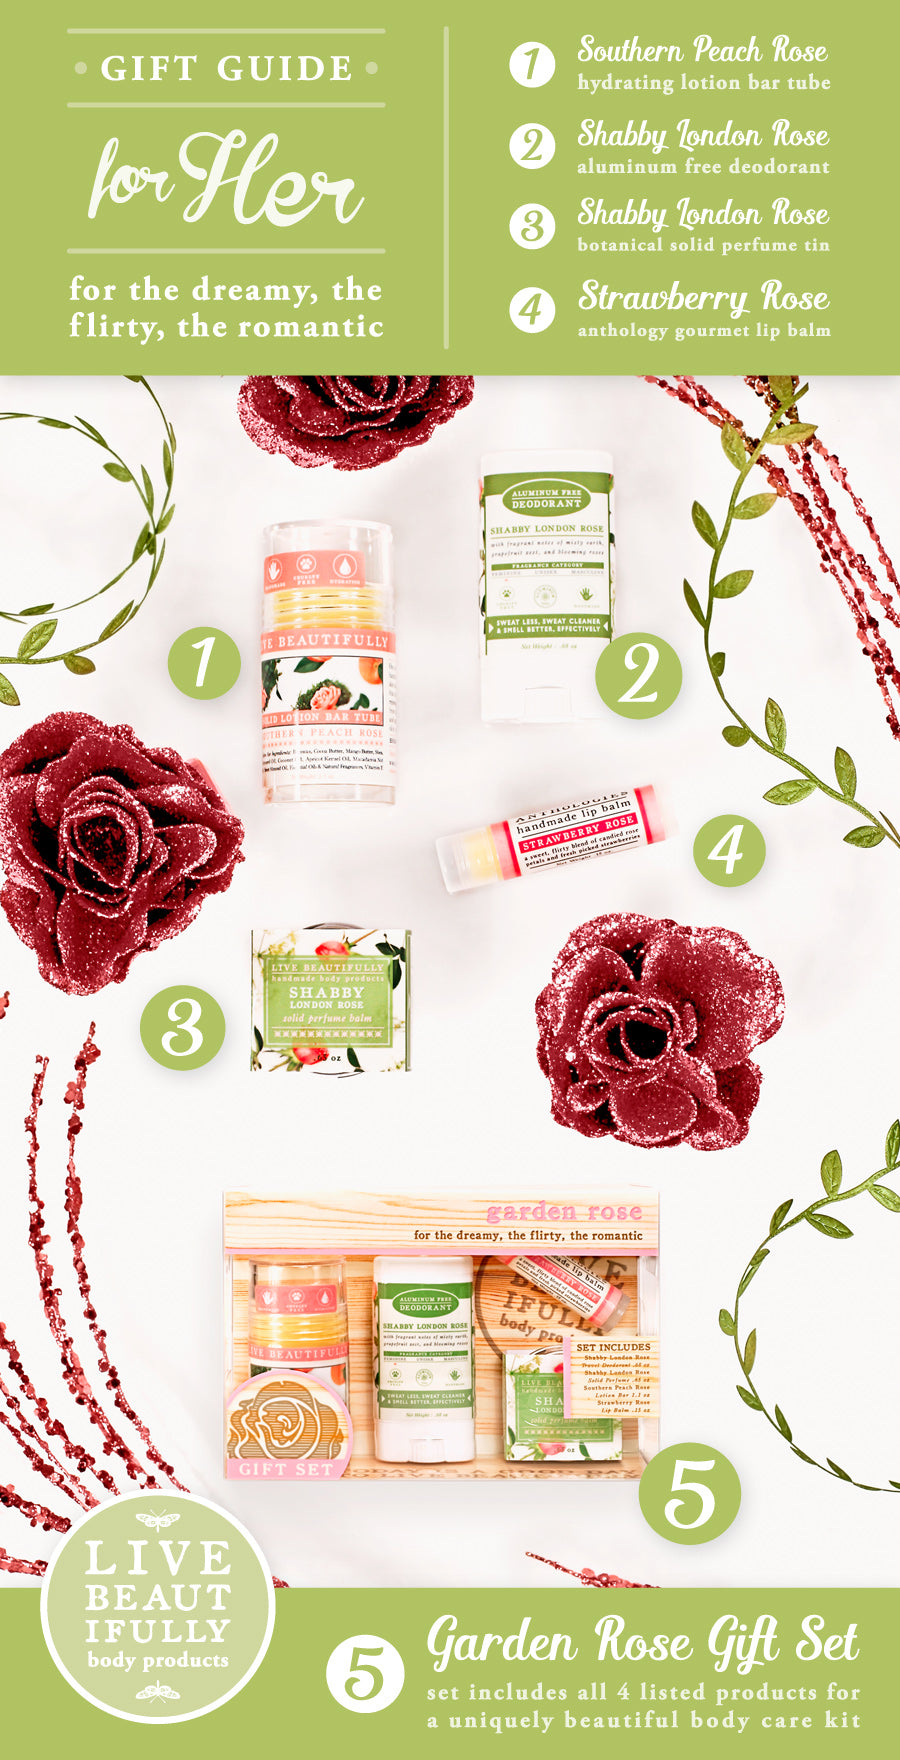 Garden Rose Body Care Gift Guide